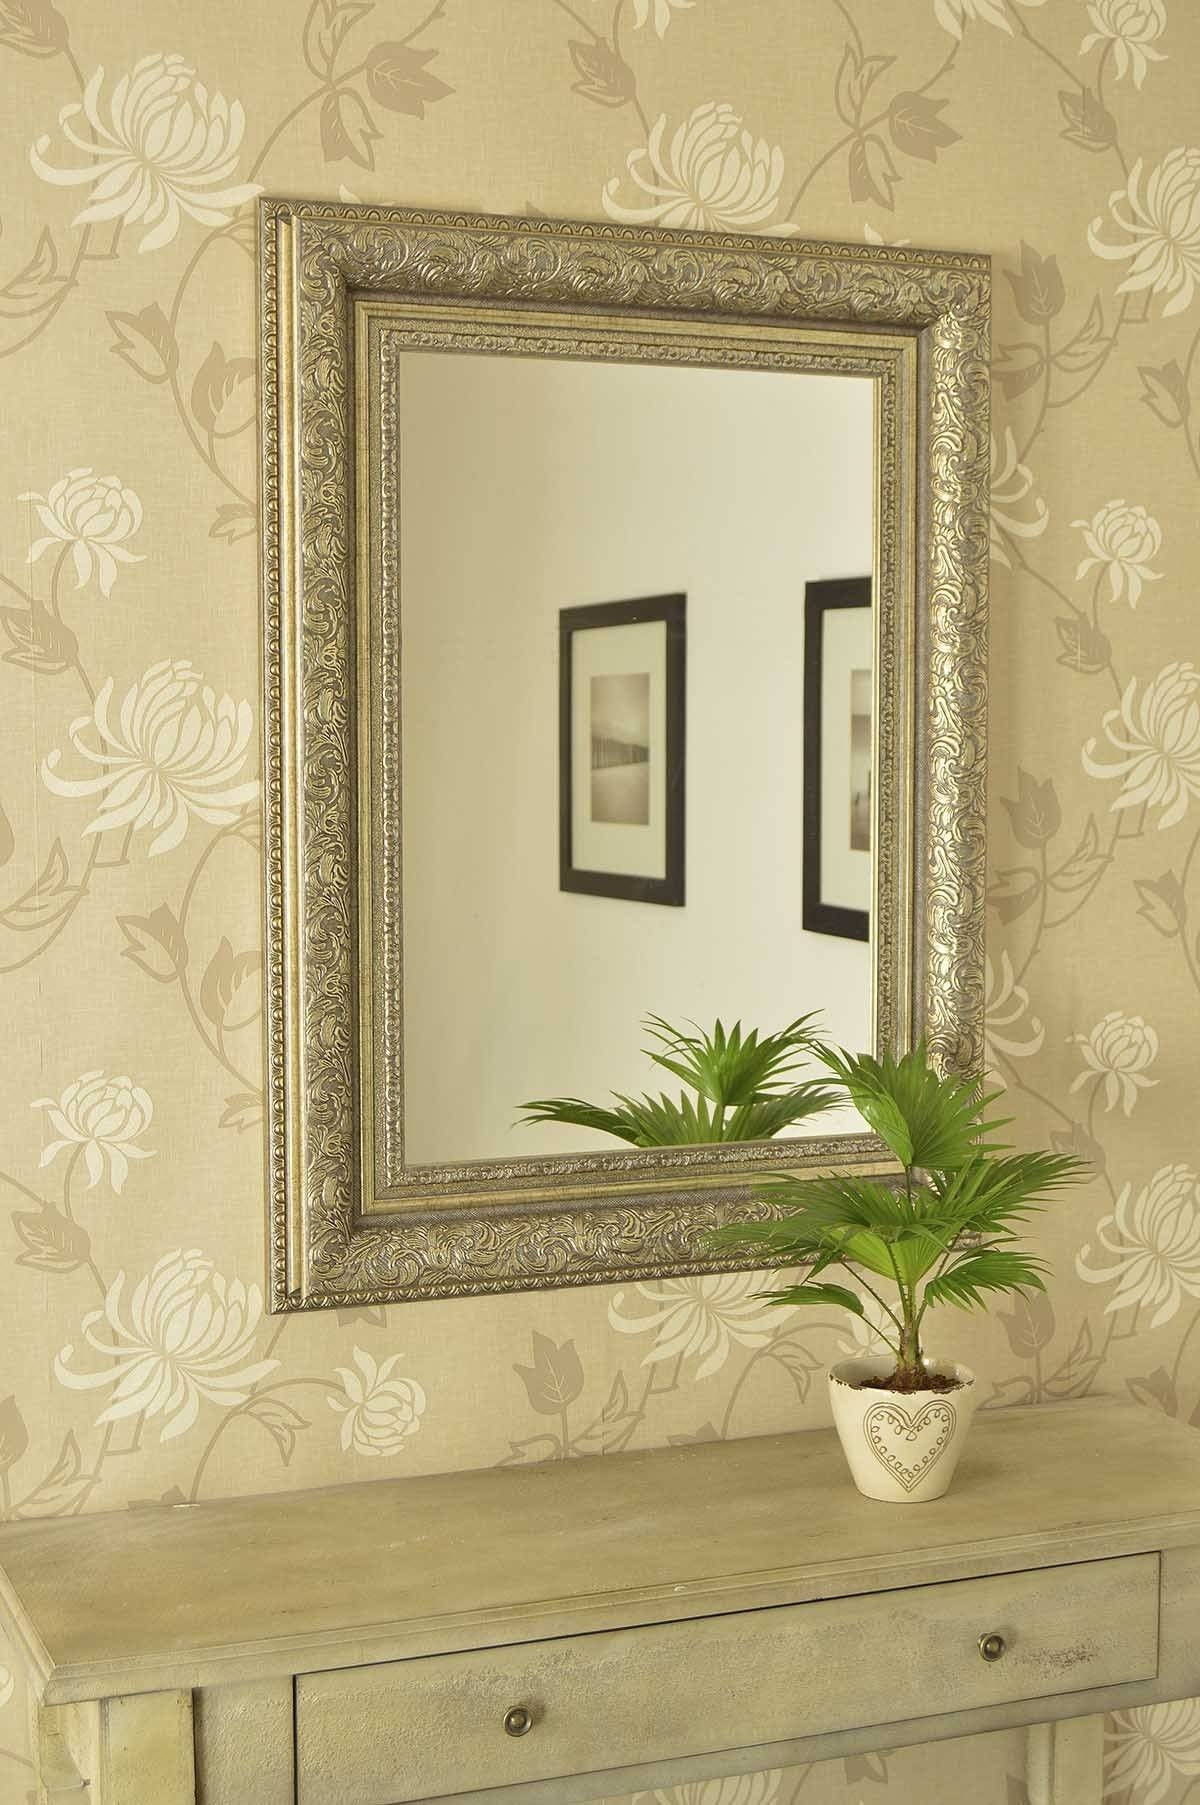 Classic Impression On Antique Wall Mirrors | Vwho regarding Antique Cream Mirrors (Image 11 of 25)